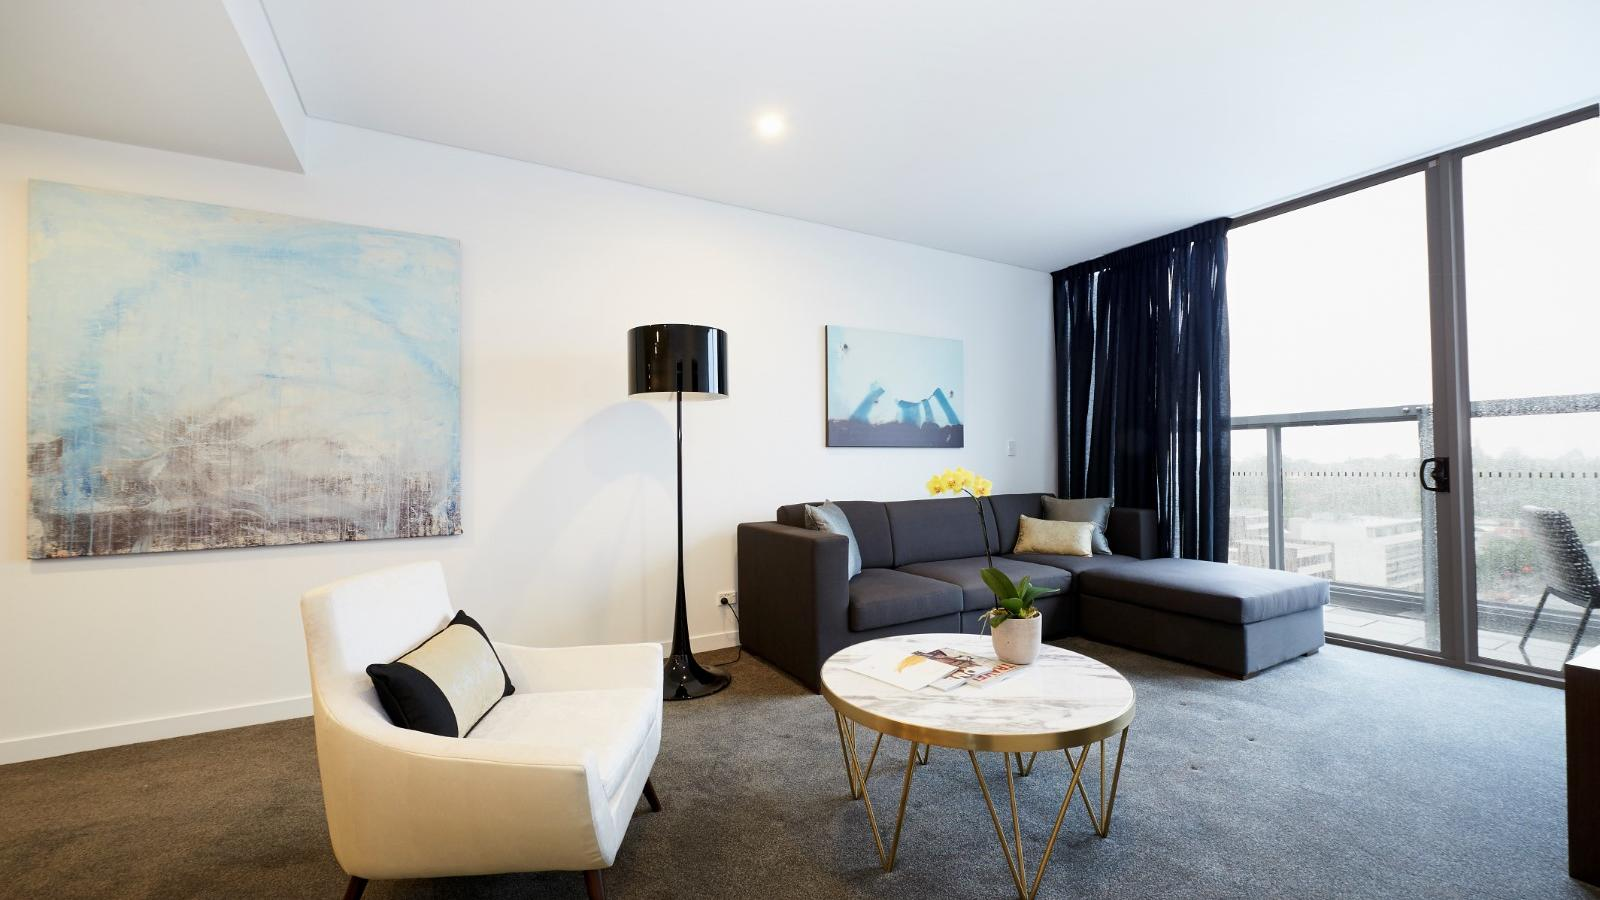 Terrace and Living Room at Silkari Suites Chatswood